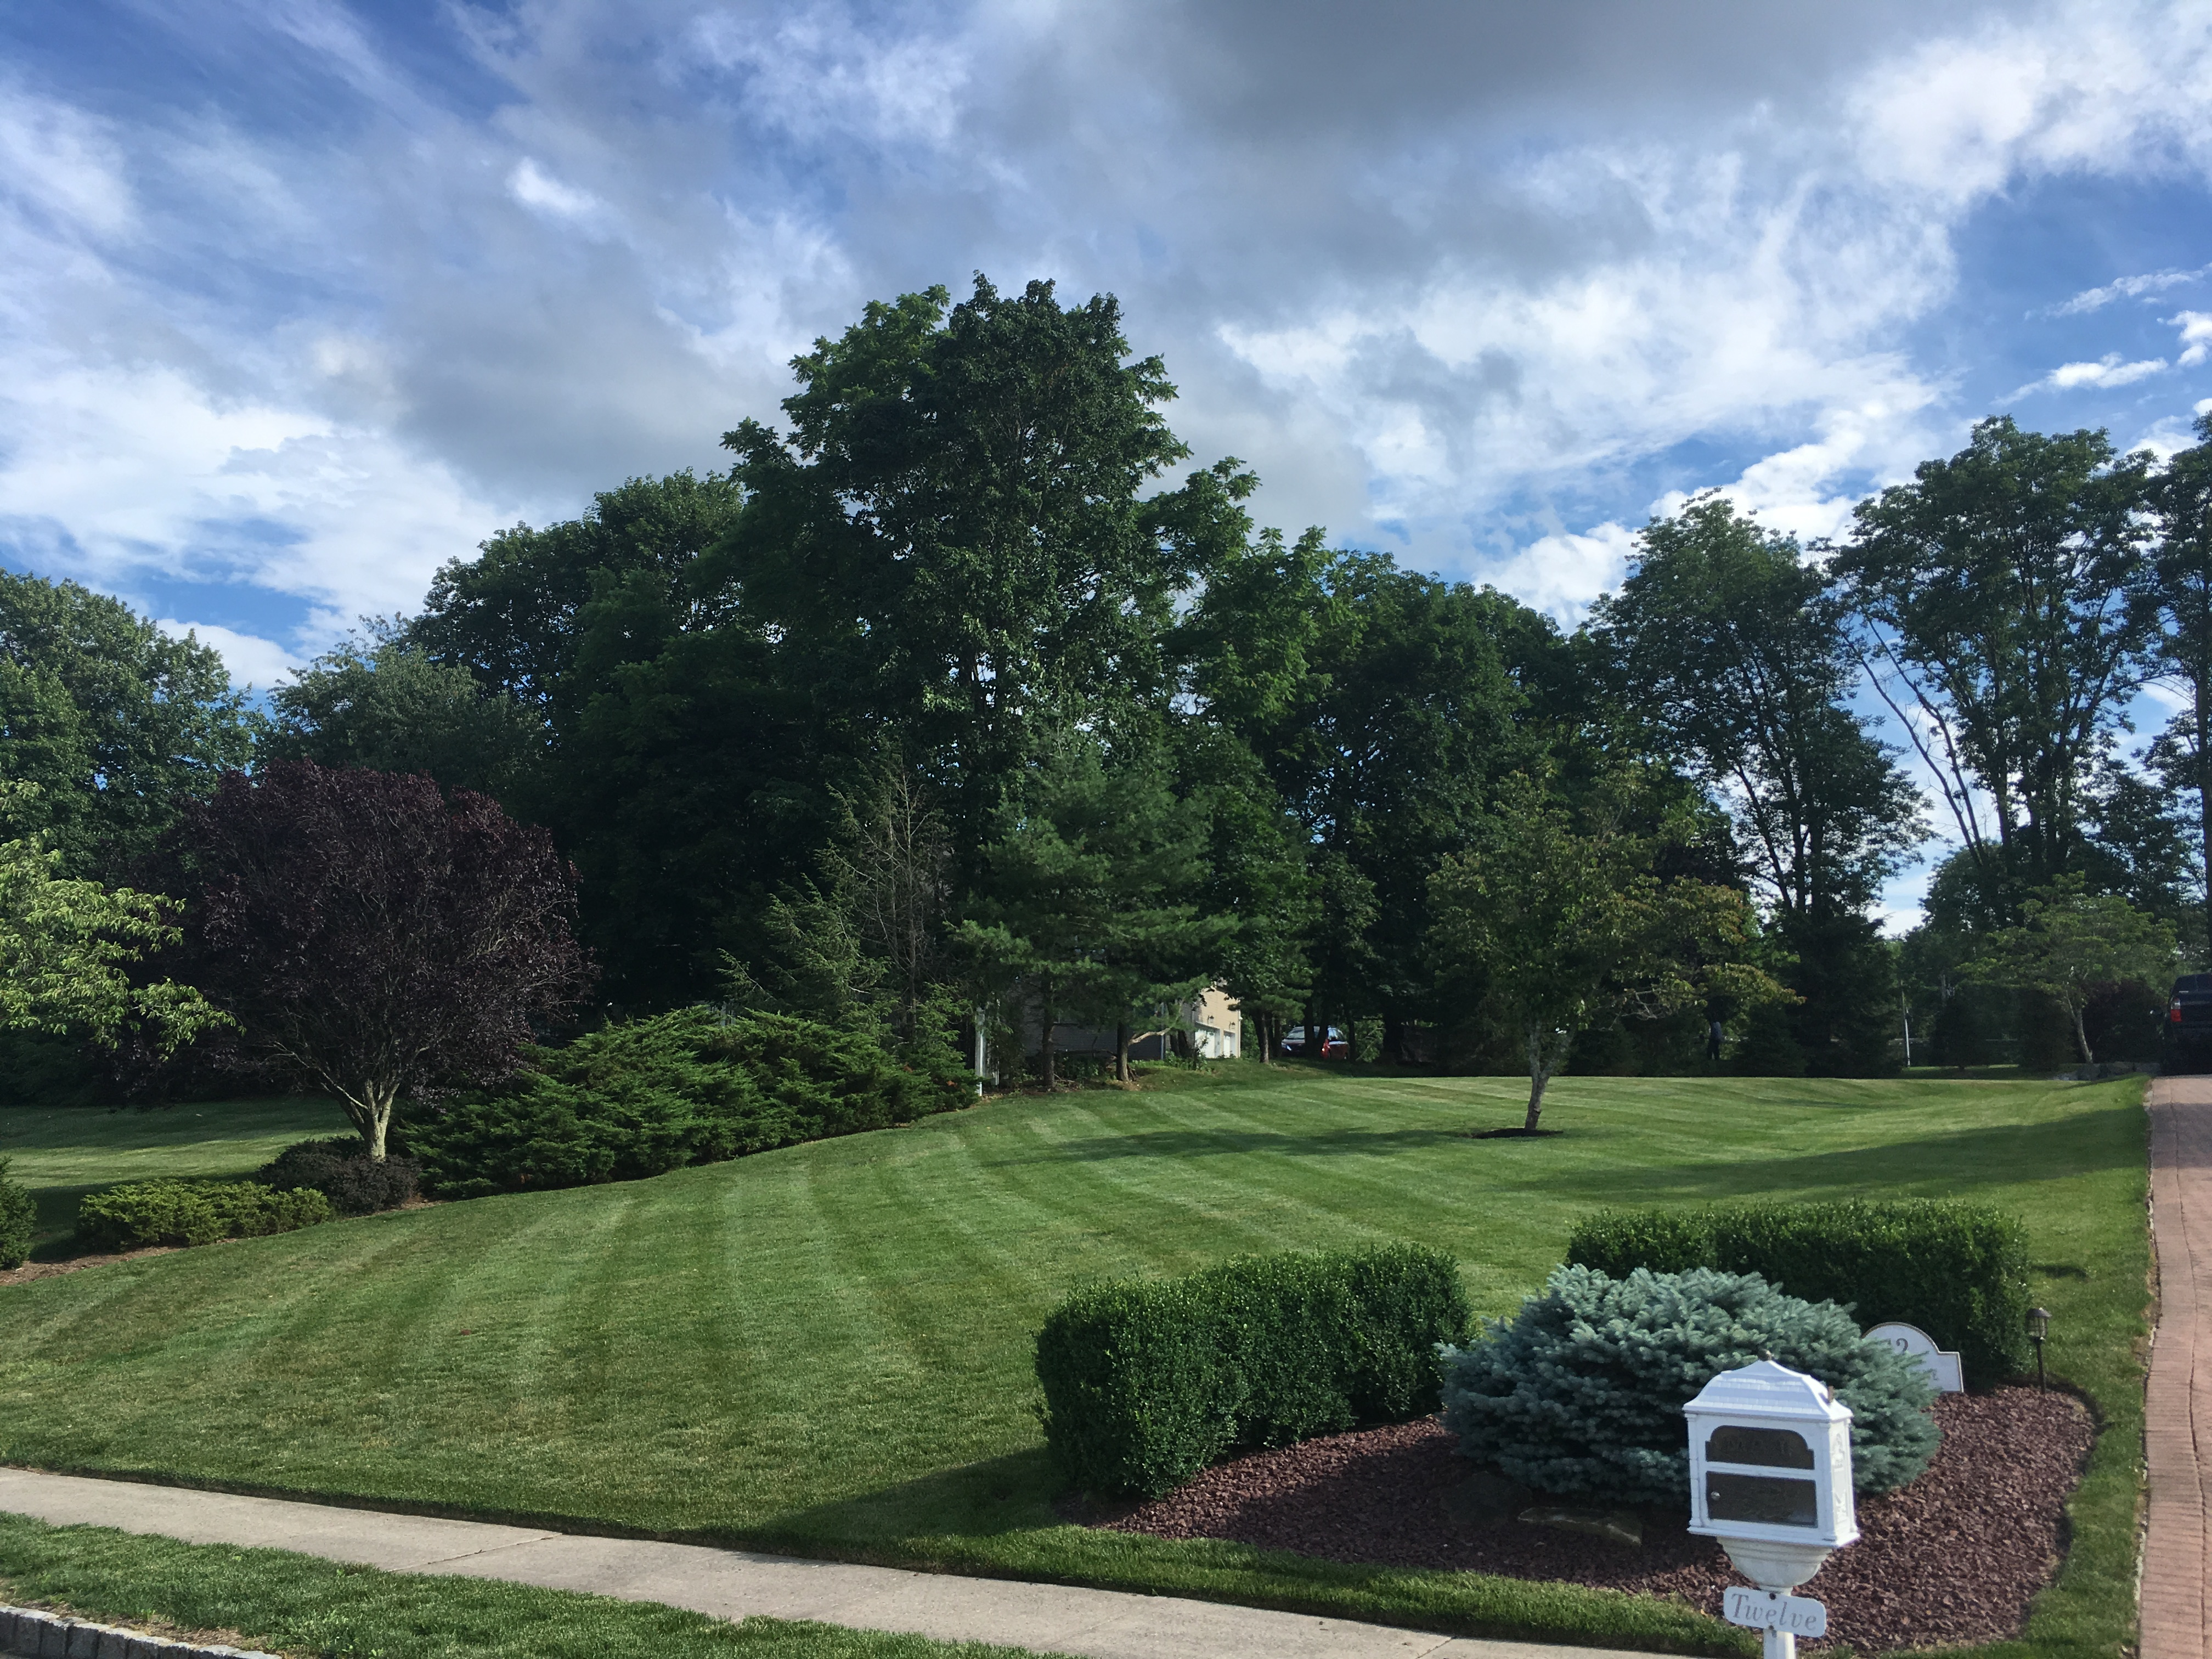 Landscaping Design and Services | Middlesex NJ | Farah Landscape